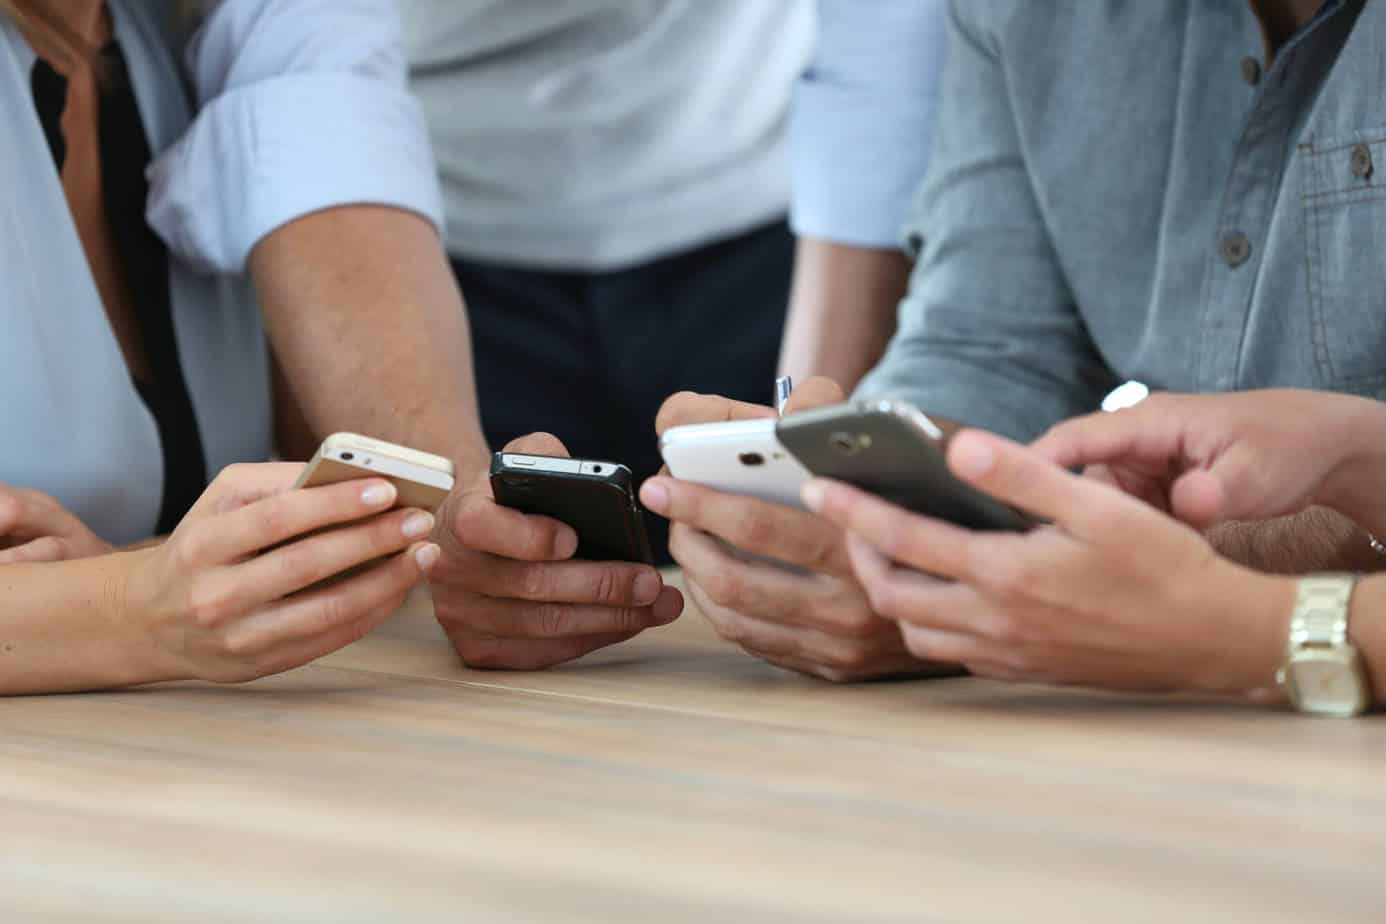 Smartphone Buying Guide - How To Buy The Best Mobile Phone